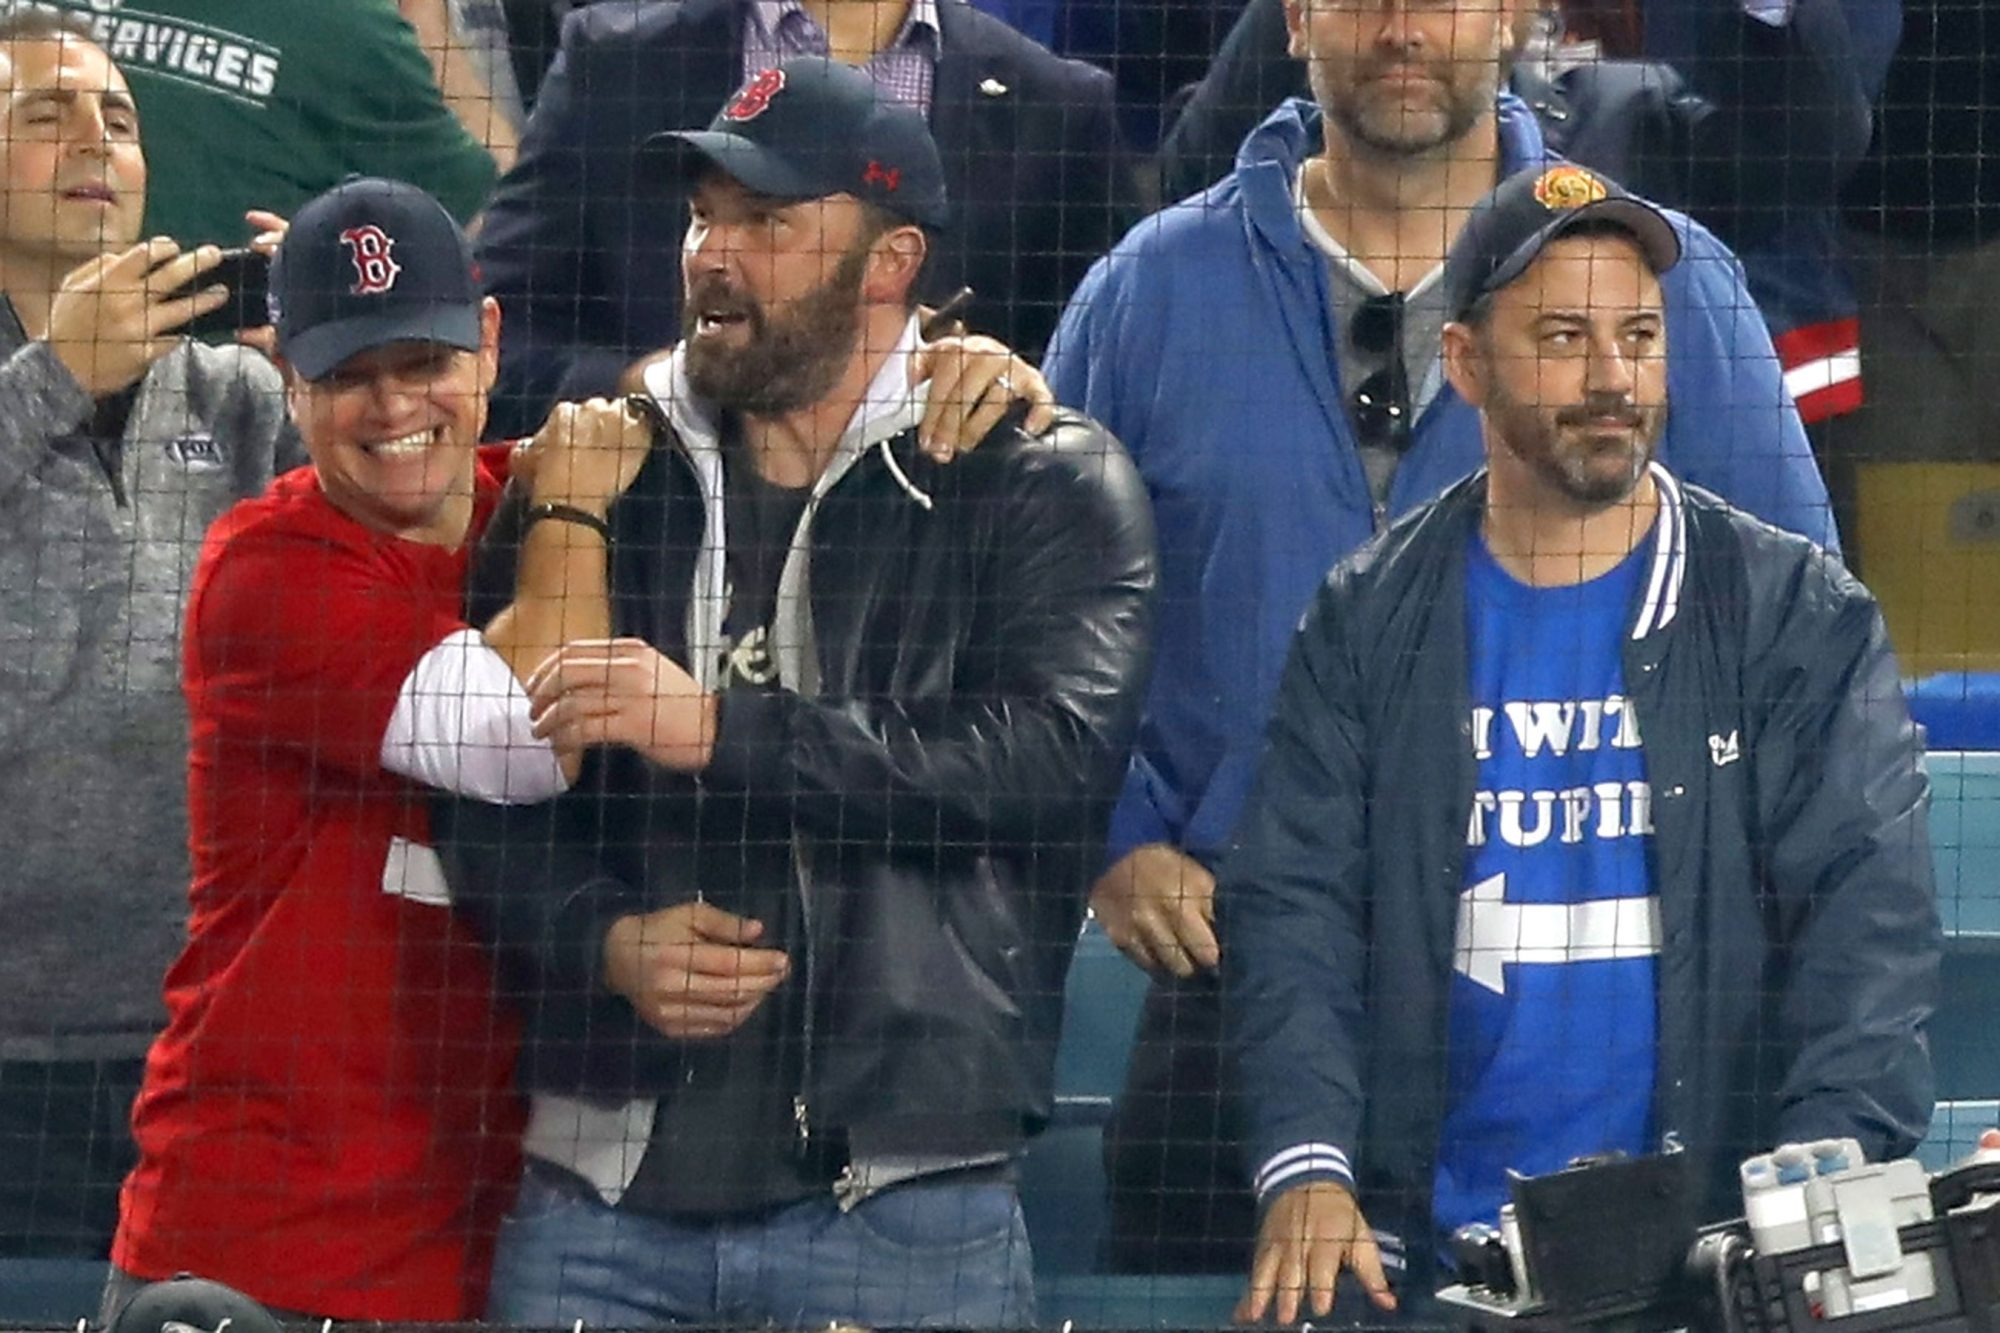 Celebrities At The Los Angeles Dodgers Game - World Series - Boston Red Sox v Los Angeles Dodgers - Game Five